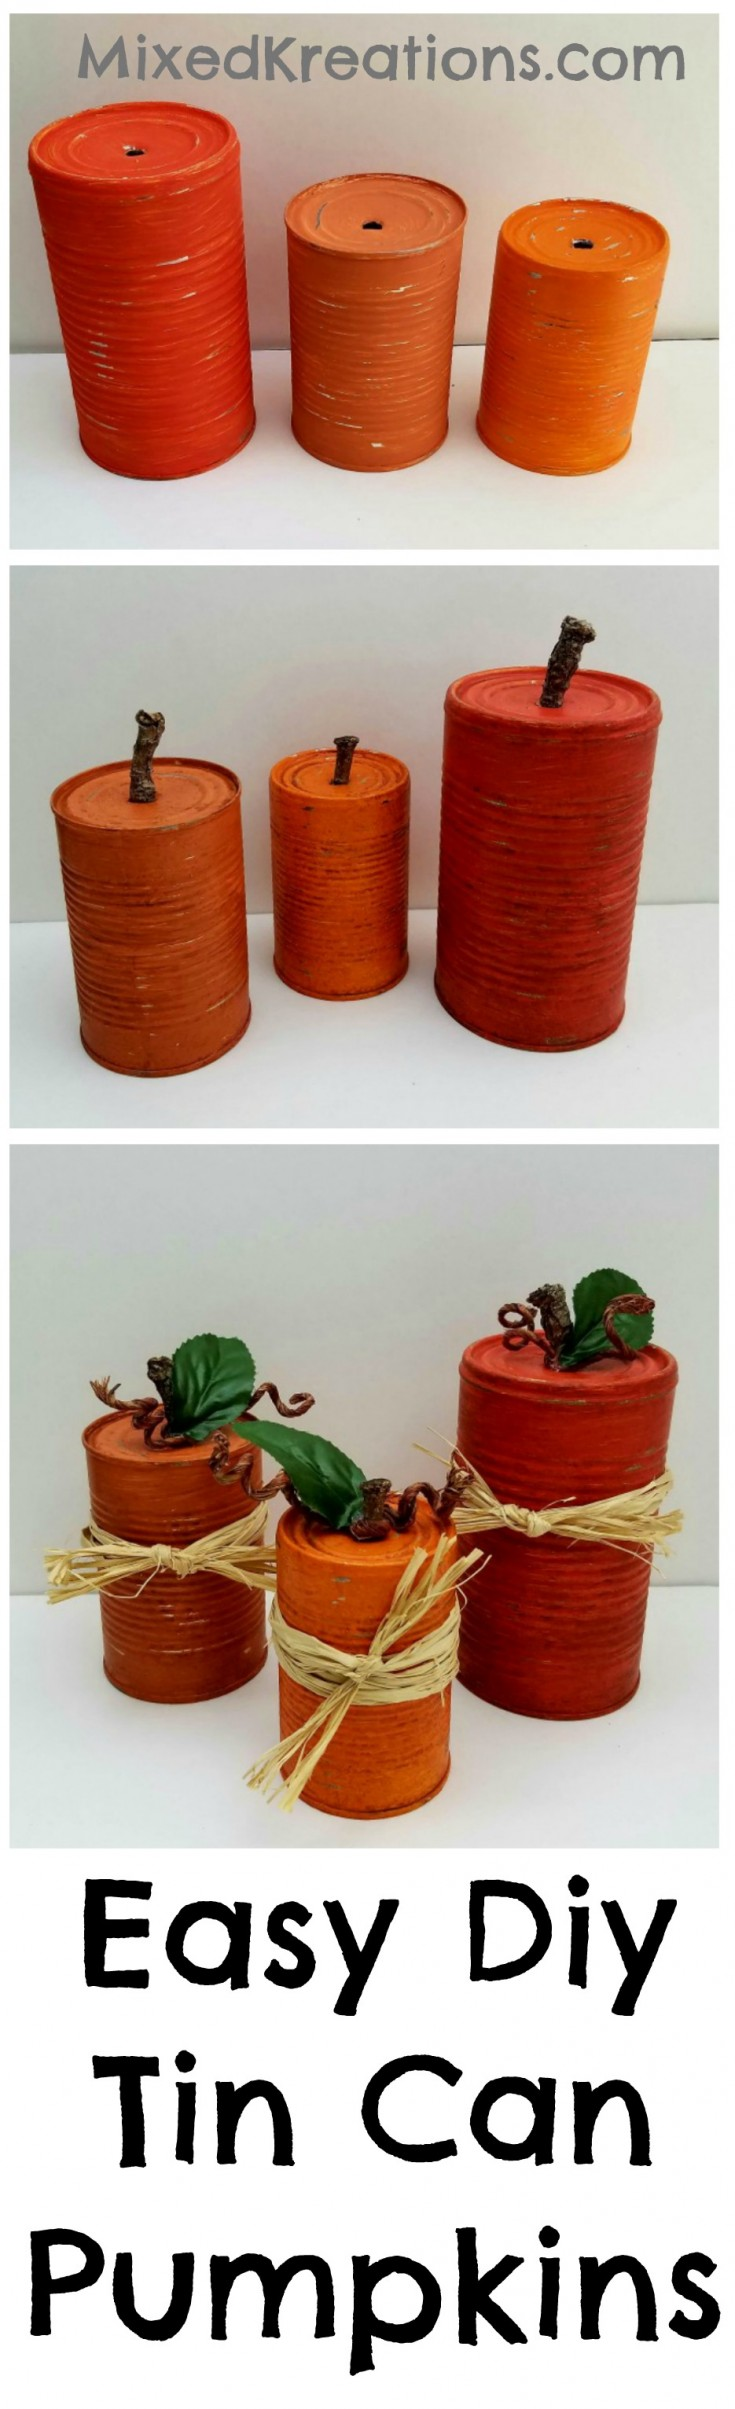 easy diy tin can pumpkins